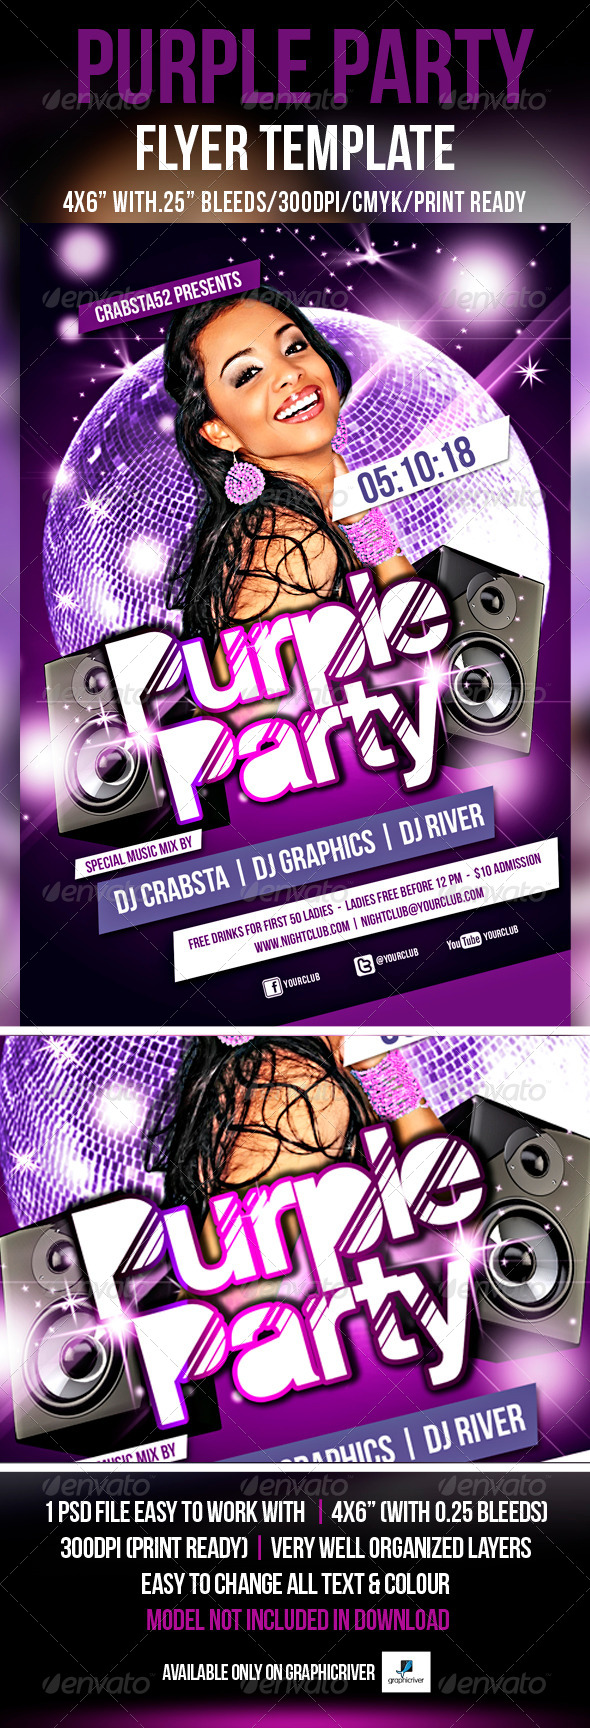 Purple Party Flyer Template  - Flyers Print Templates